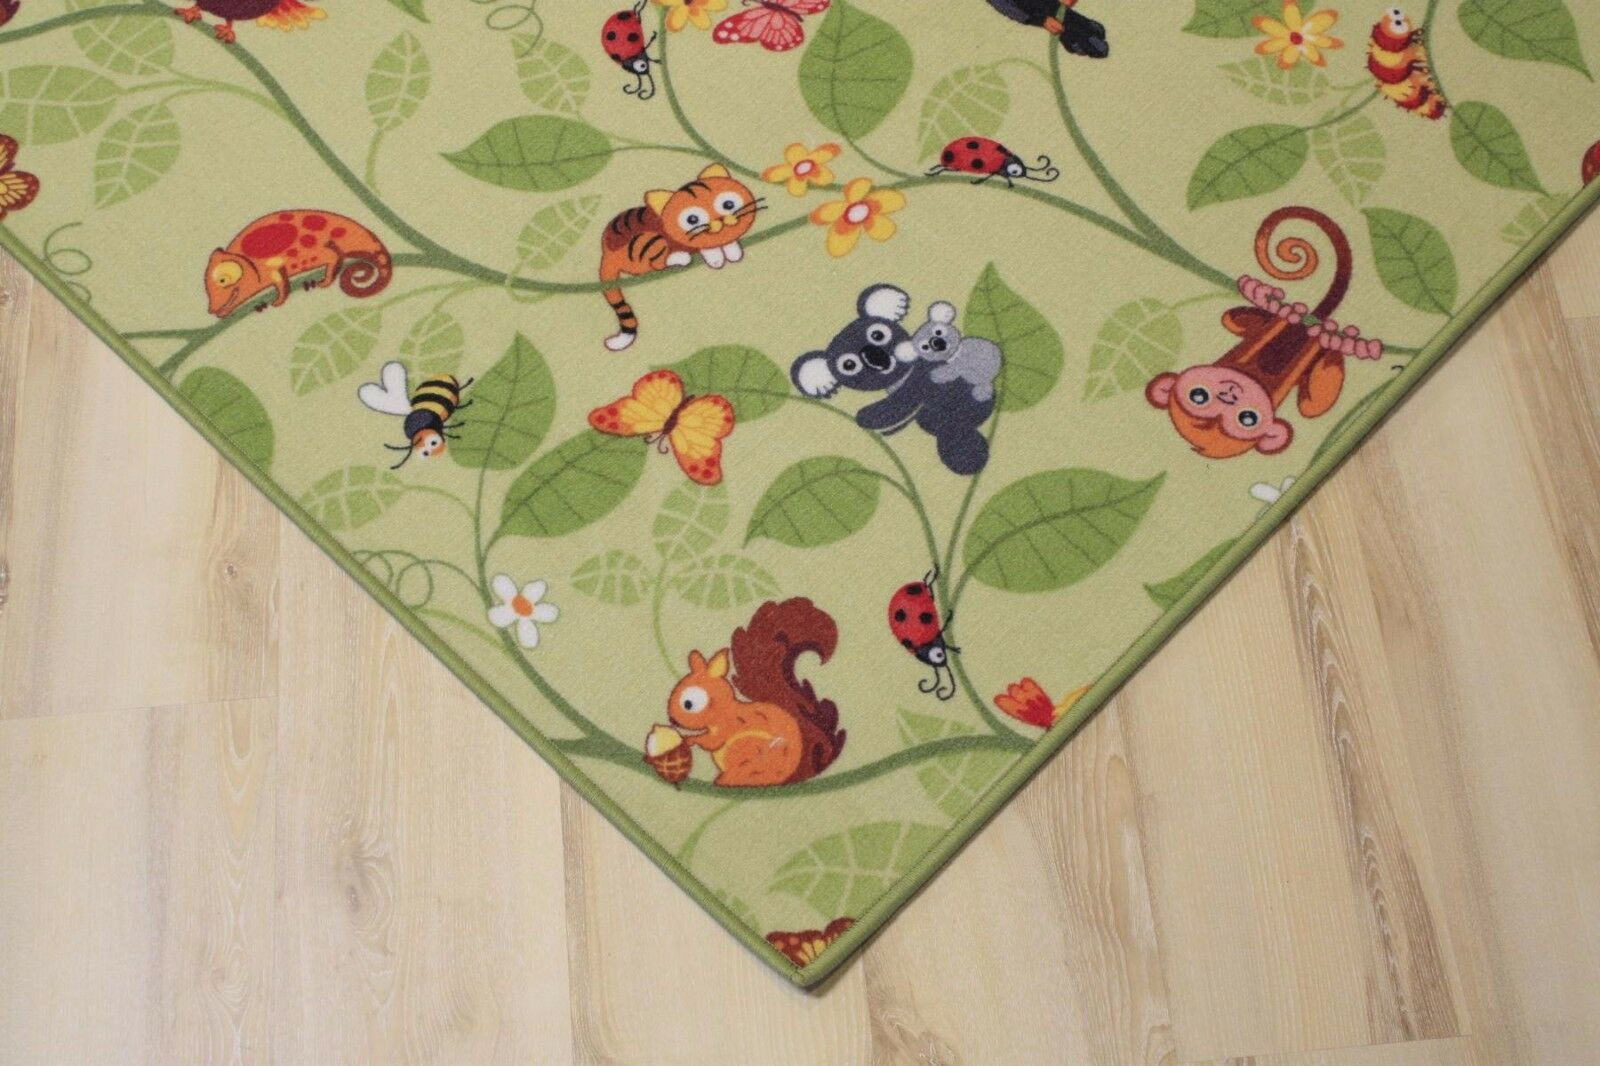 Enfants Tapis Tapis de Jeu Jungle Velours Vert 200x590 Cm Jungle